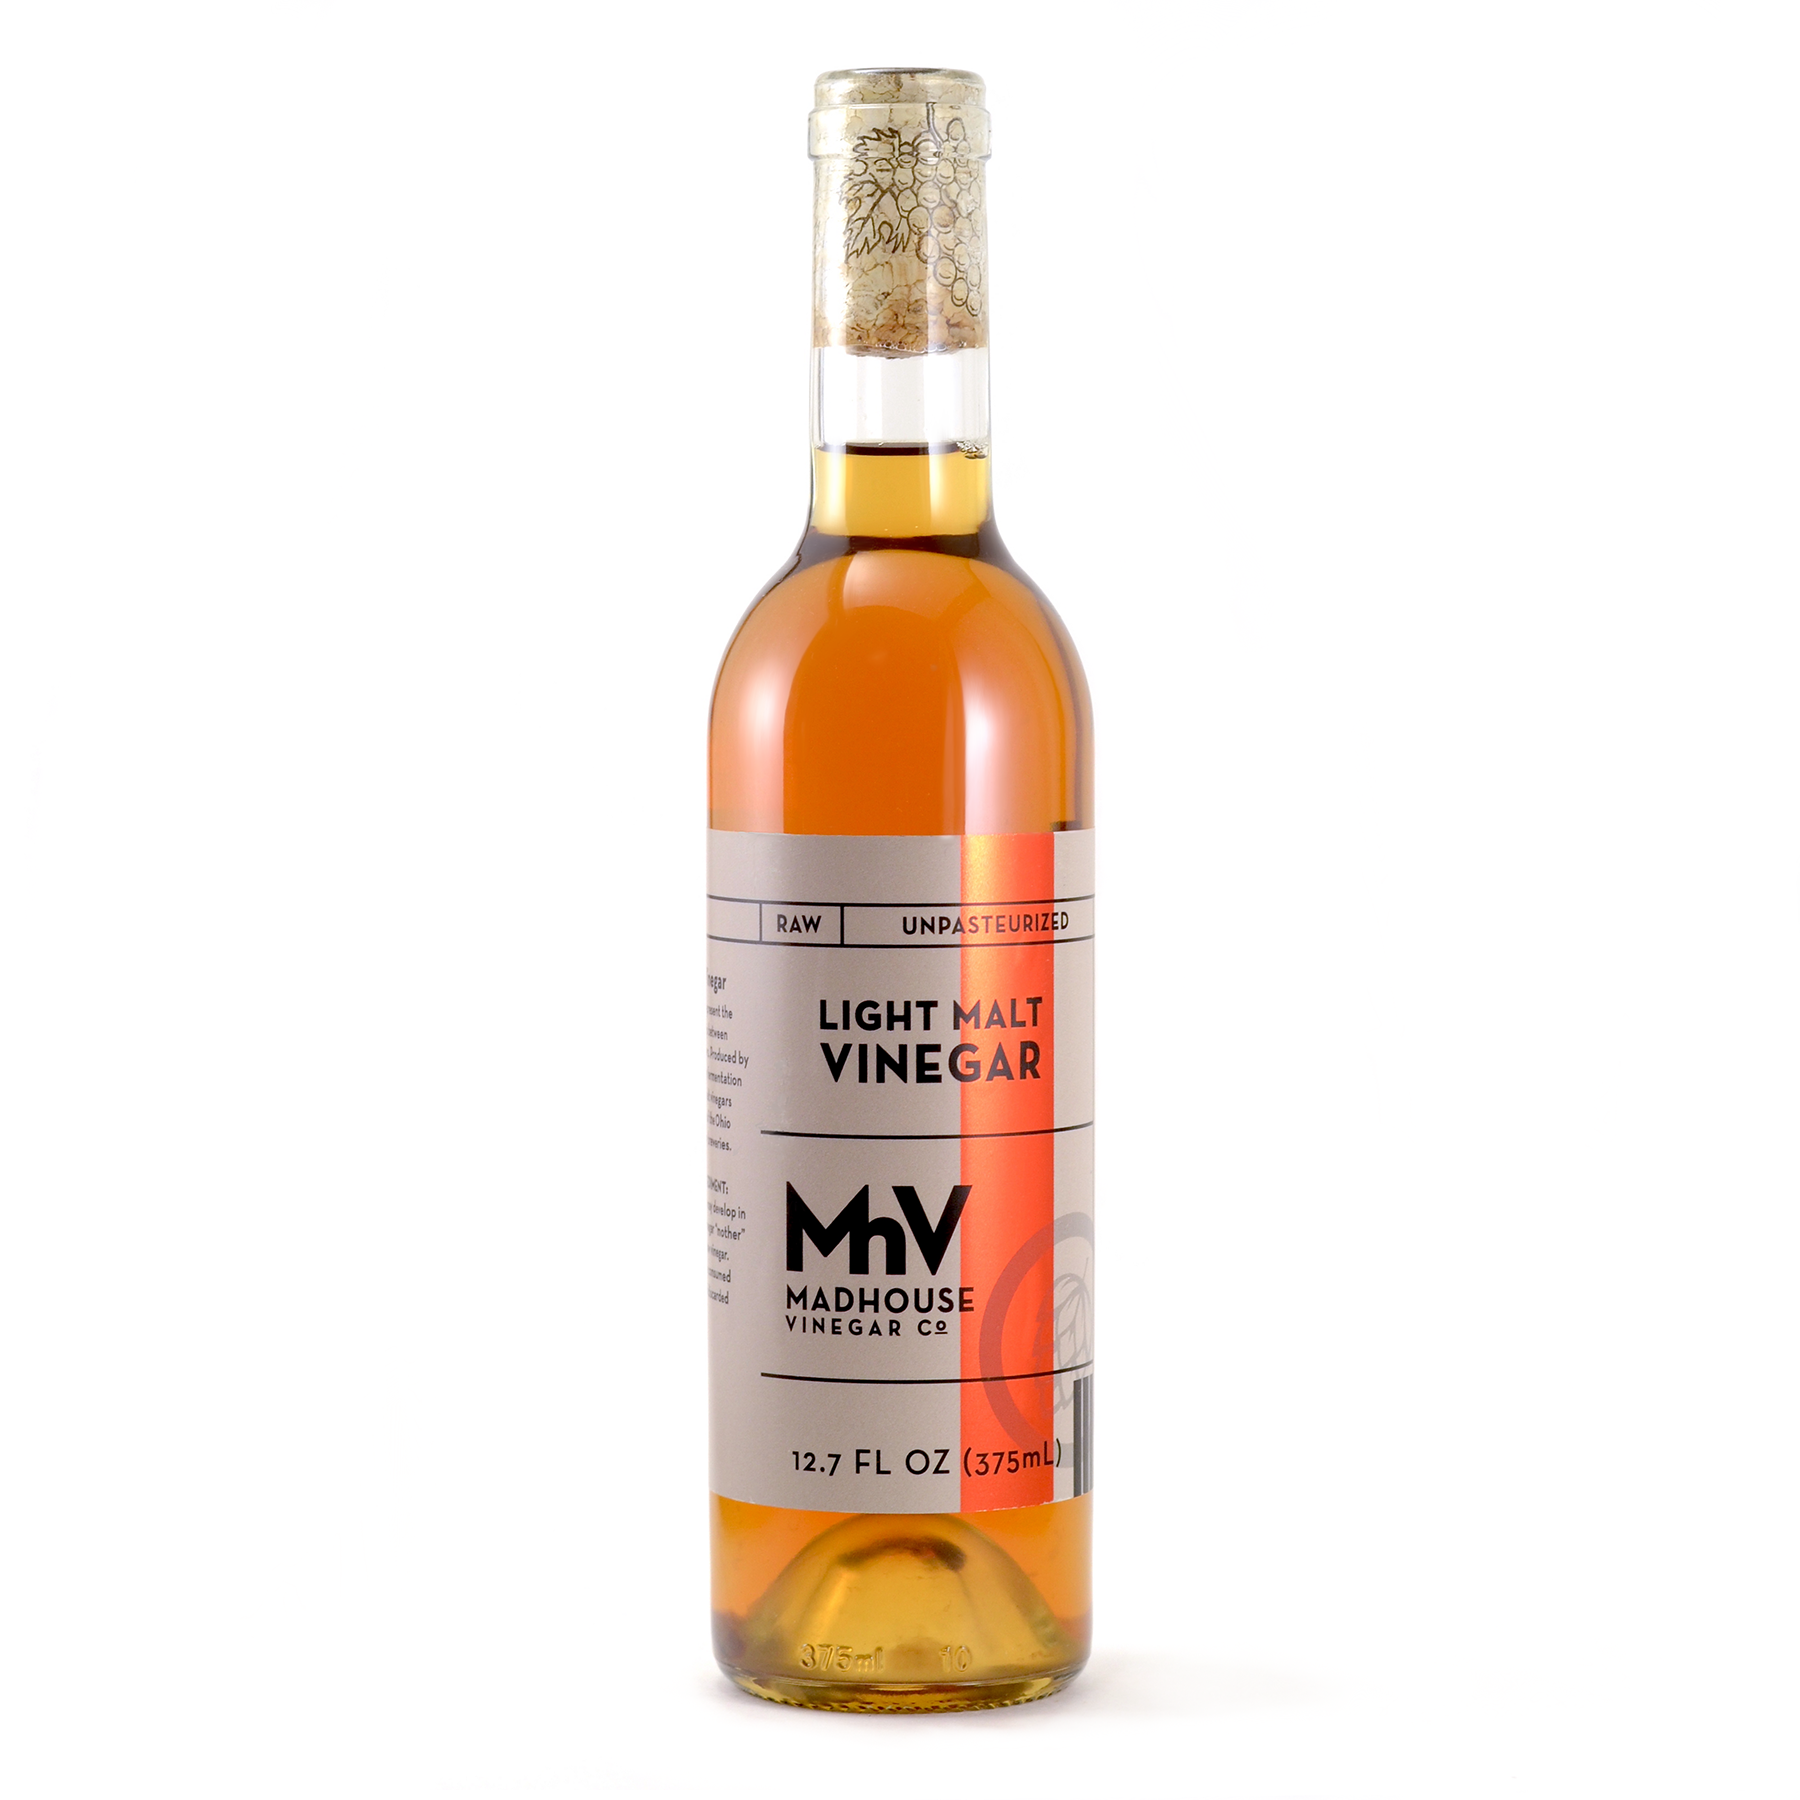 light Malt - Sharp and bright with slight earthiness in the finish